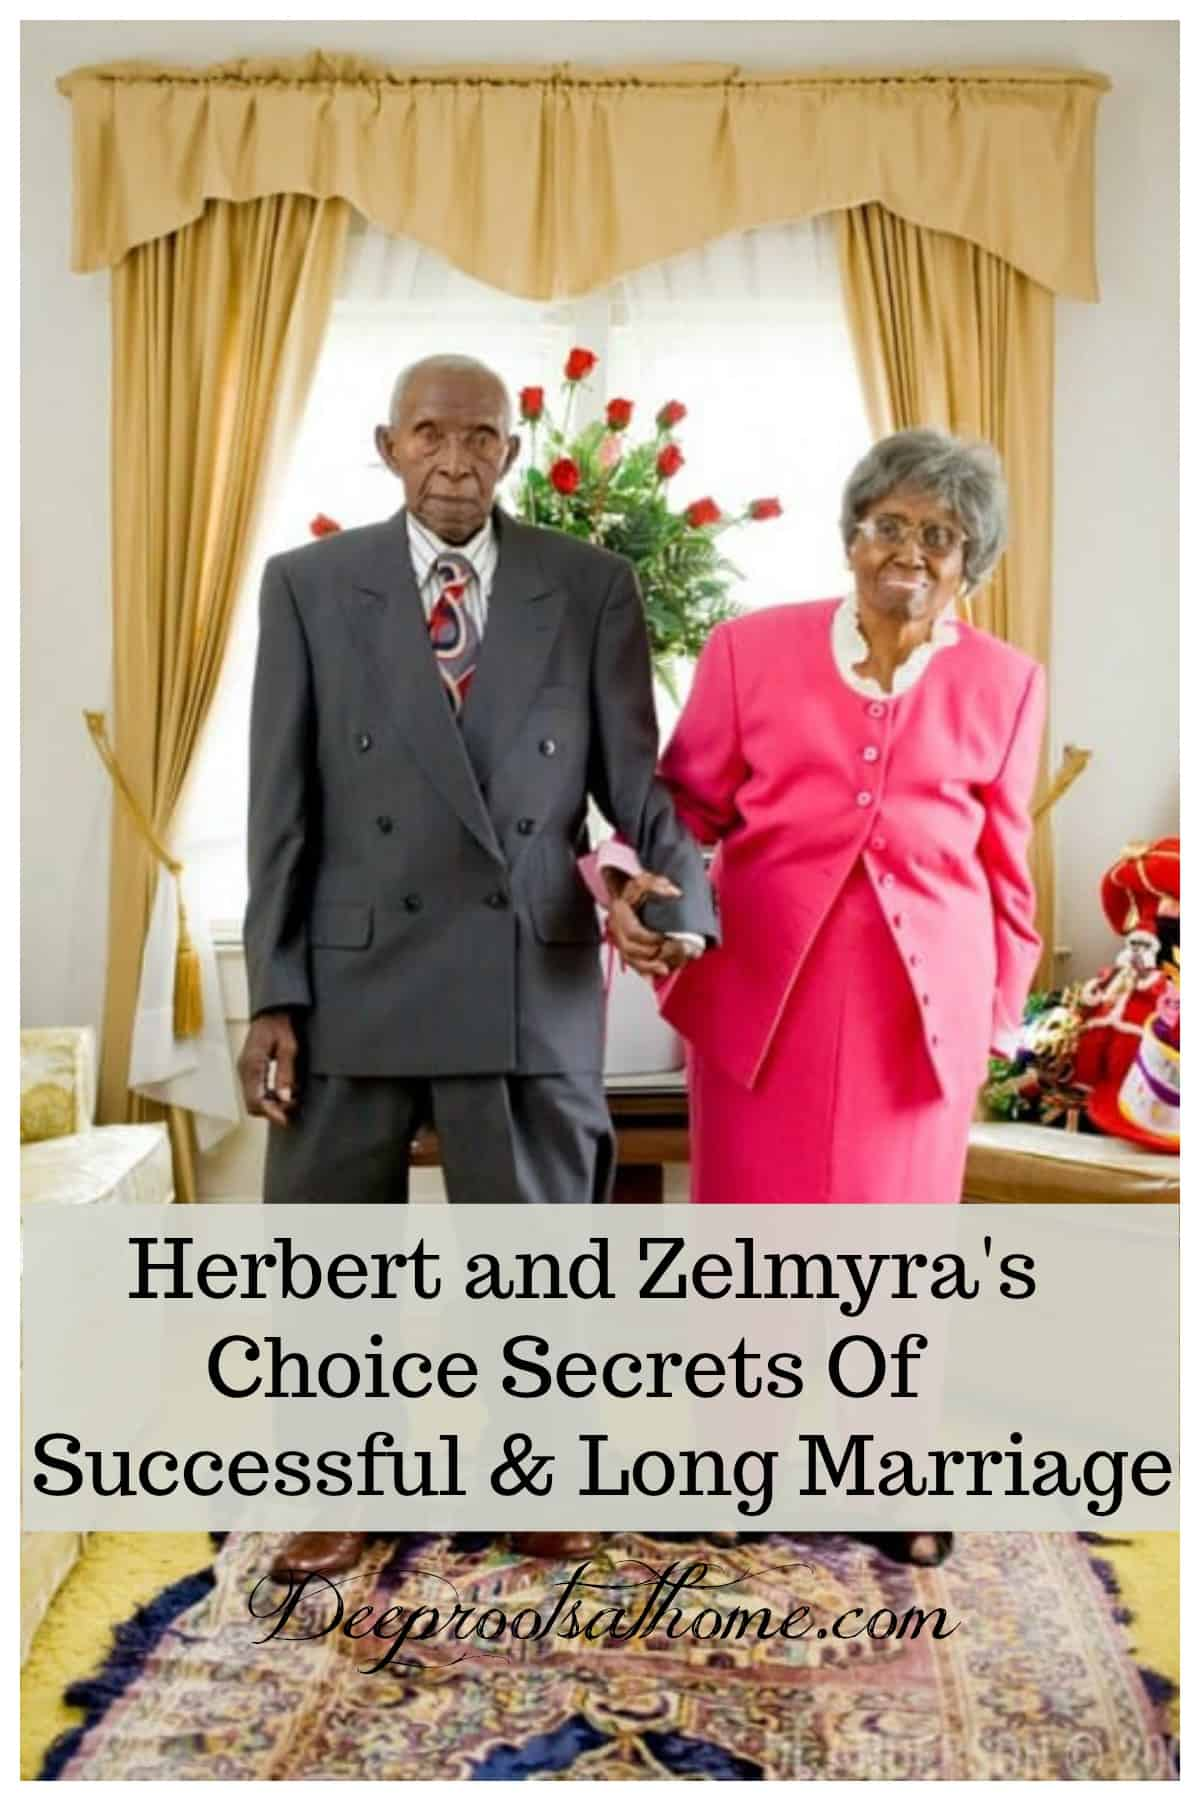 Herbert and Zelmyra's Choice Secrets Of Successful & Long Marriage. Guinness World record holders of longest living married couple